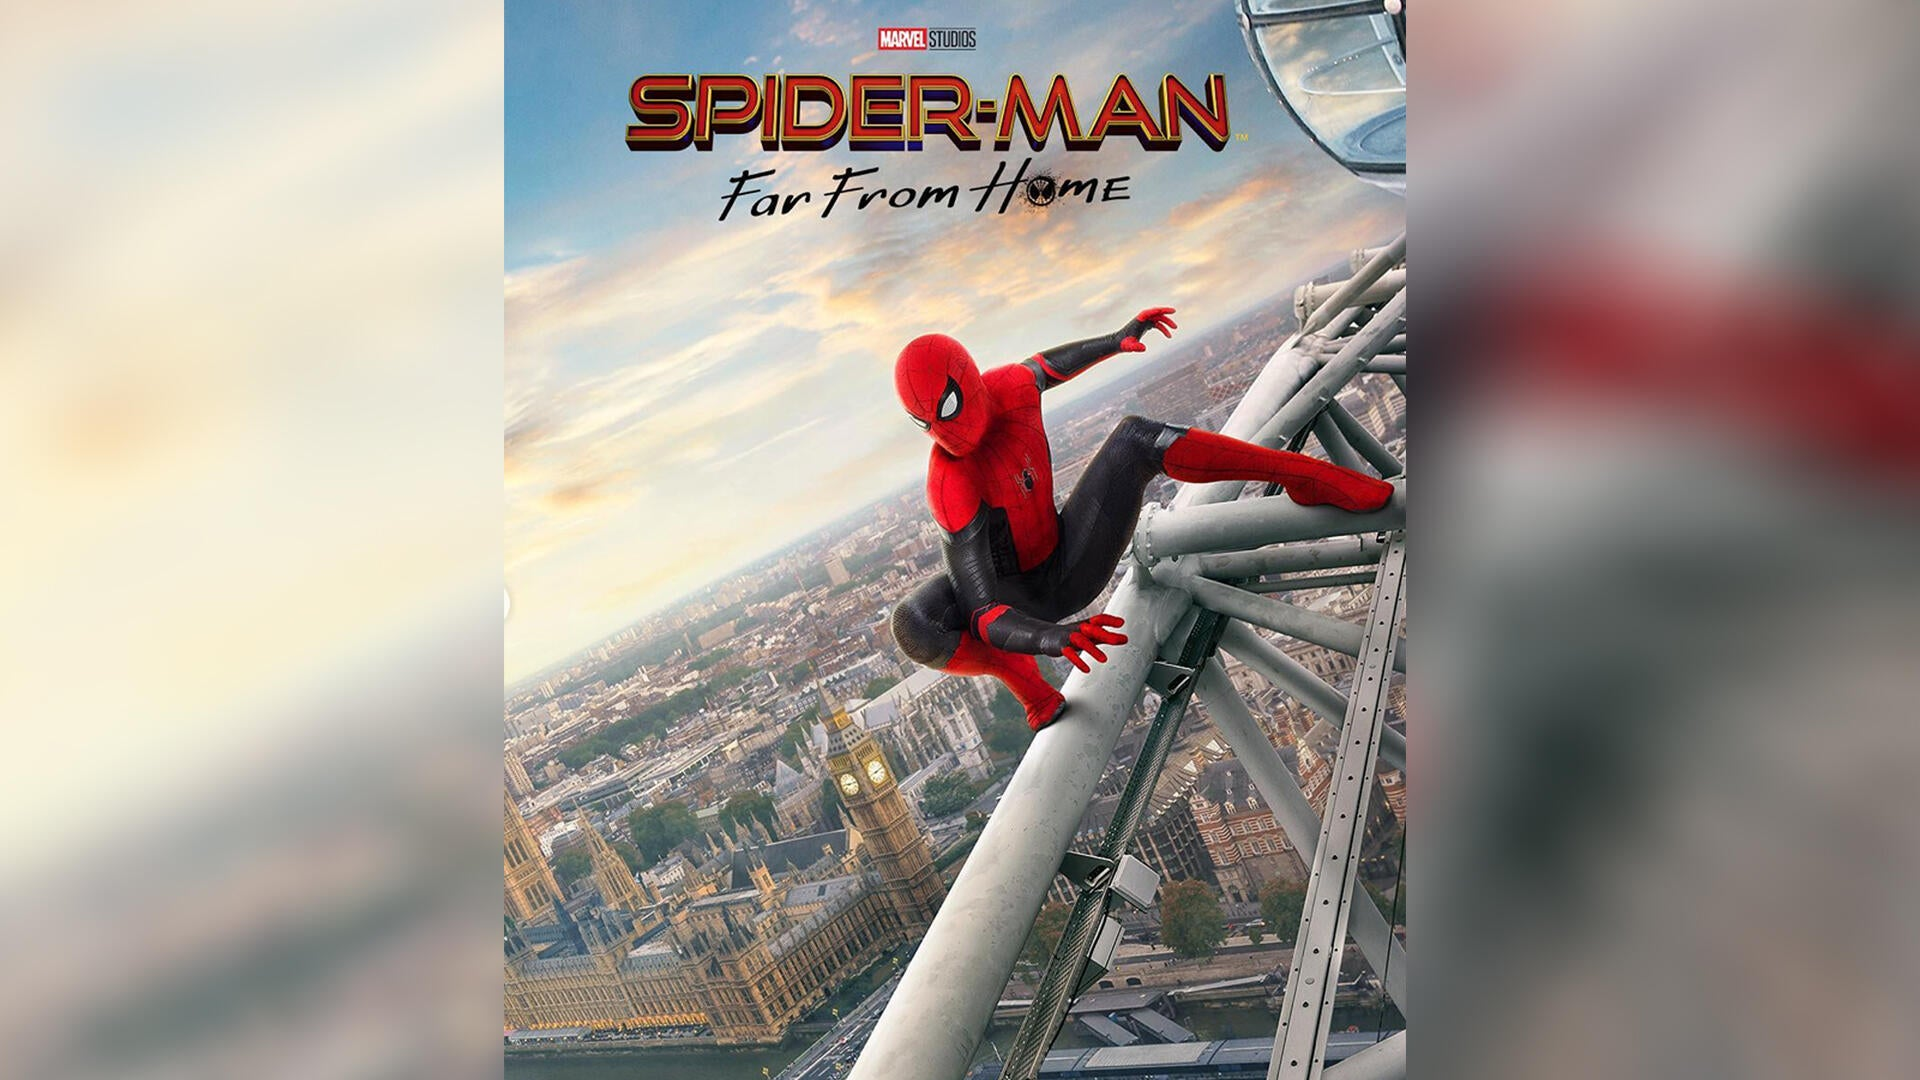 Movie Review: Peter Parker Returns in New 'Spider-Man Far From Home' Movie